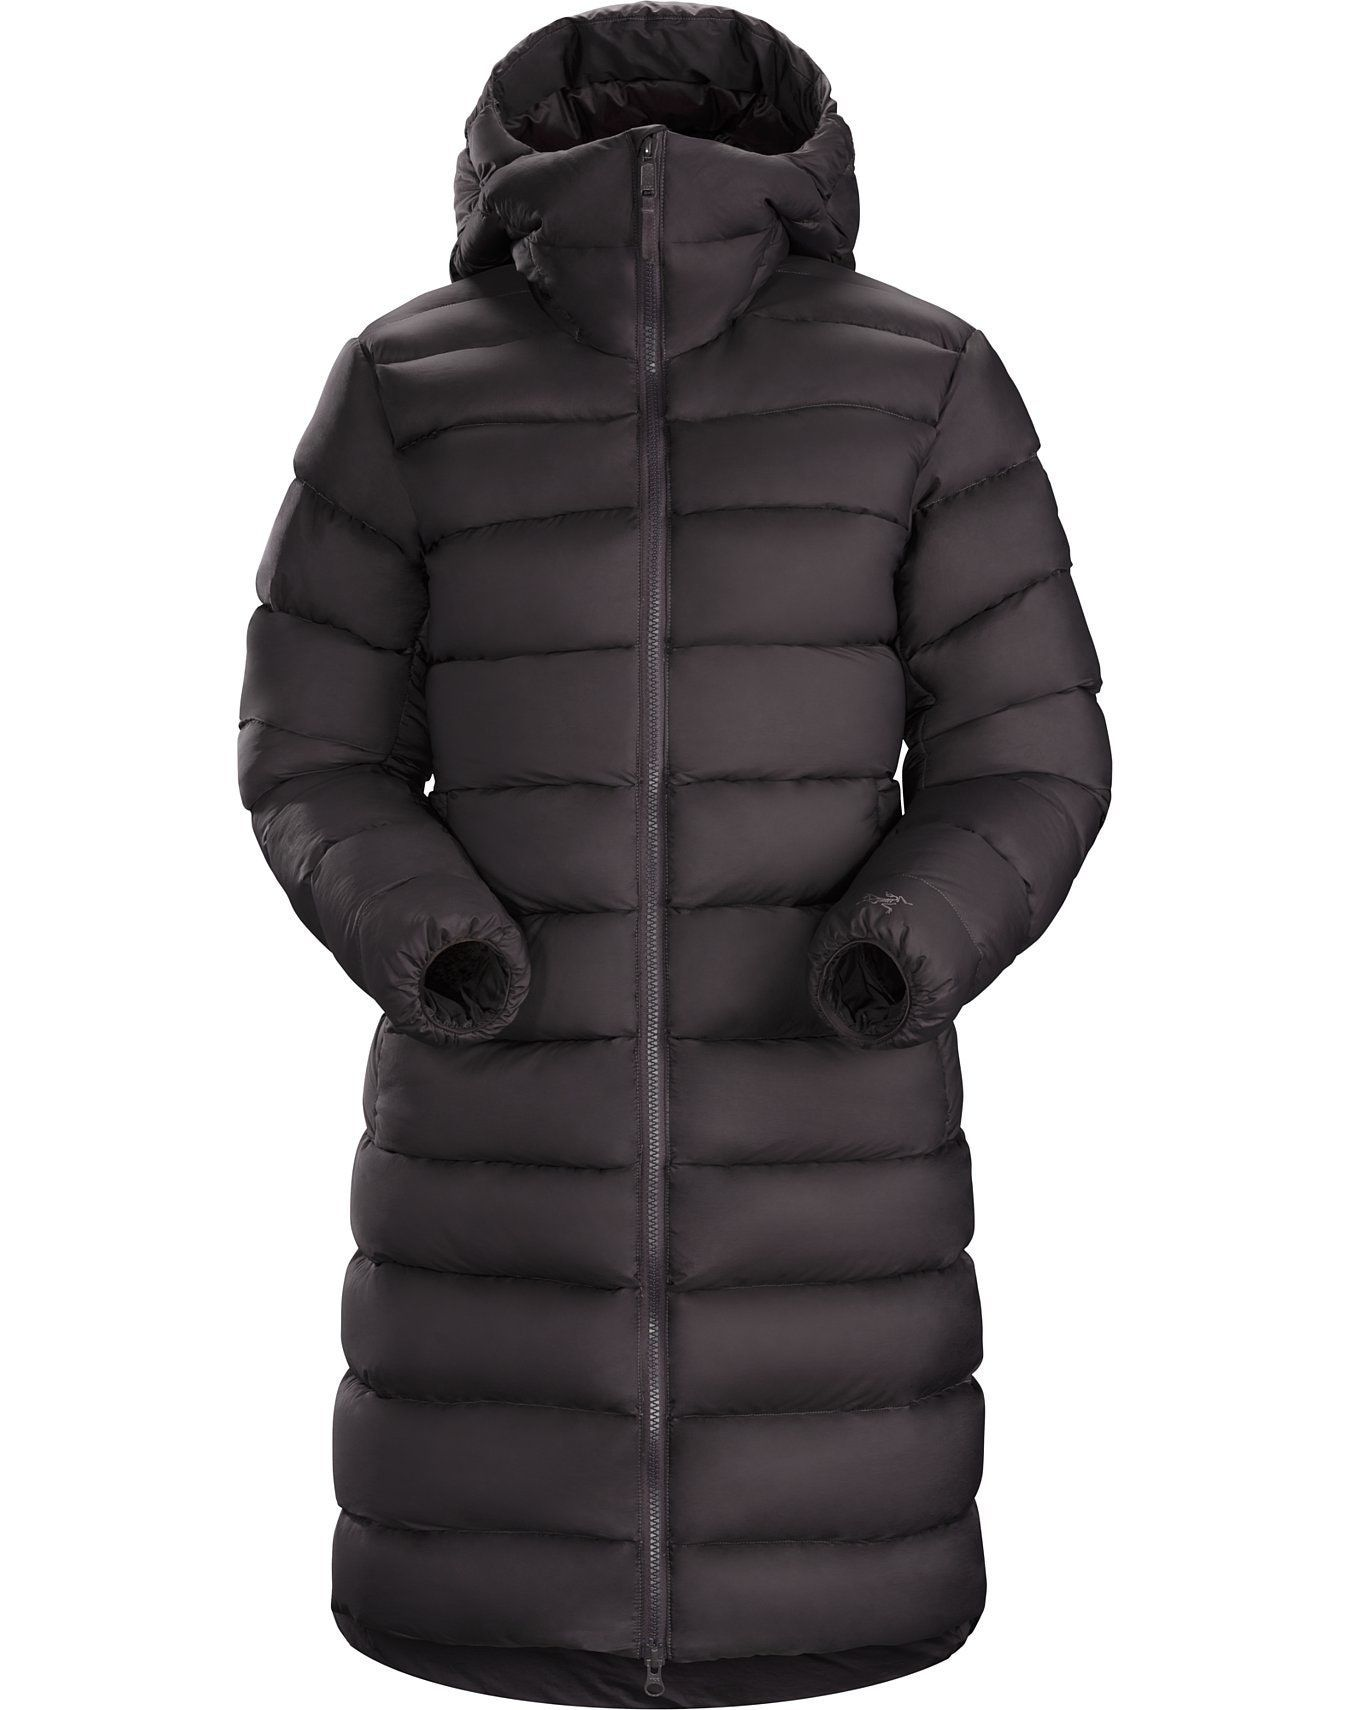 22 Canada Goose Alternatives Best Canada Goose Look Alikes Jackets In 2020 With Images Coats For Women Down Coat Clothes For Women